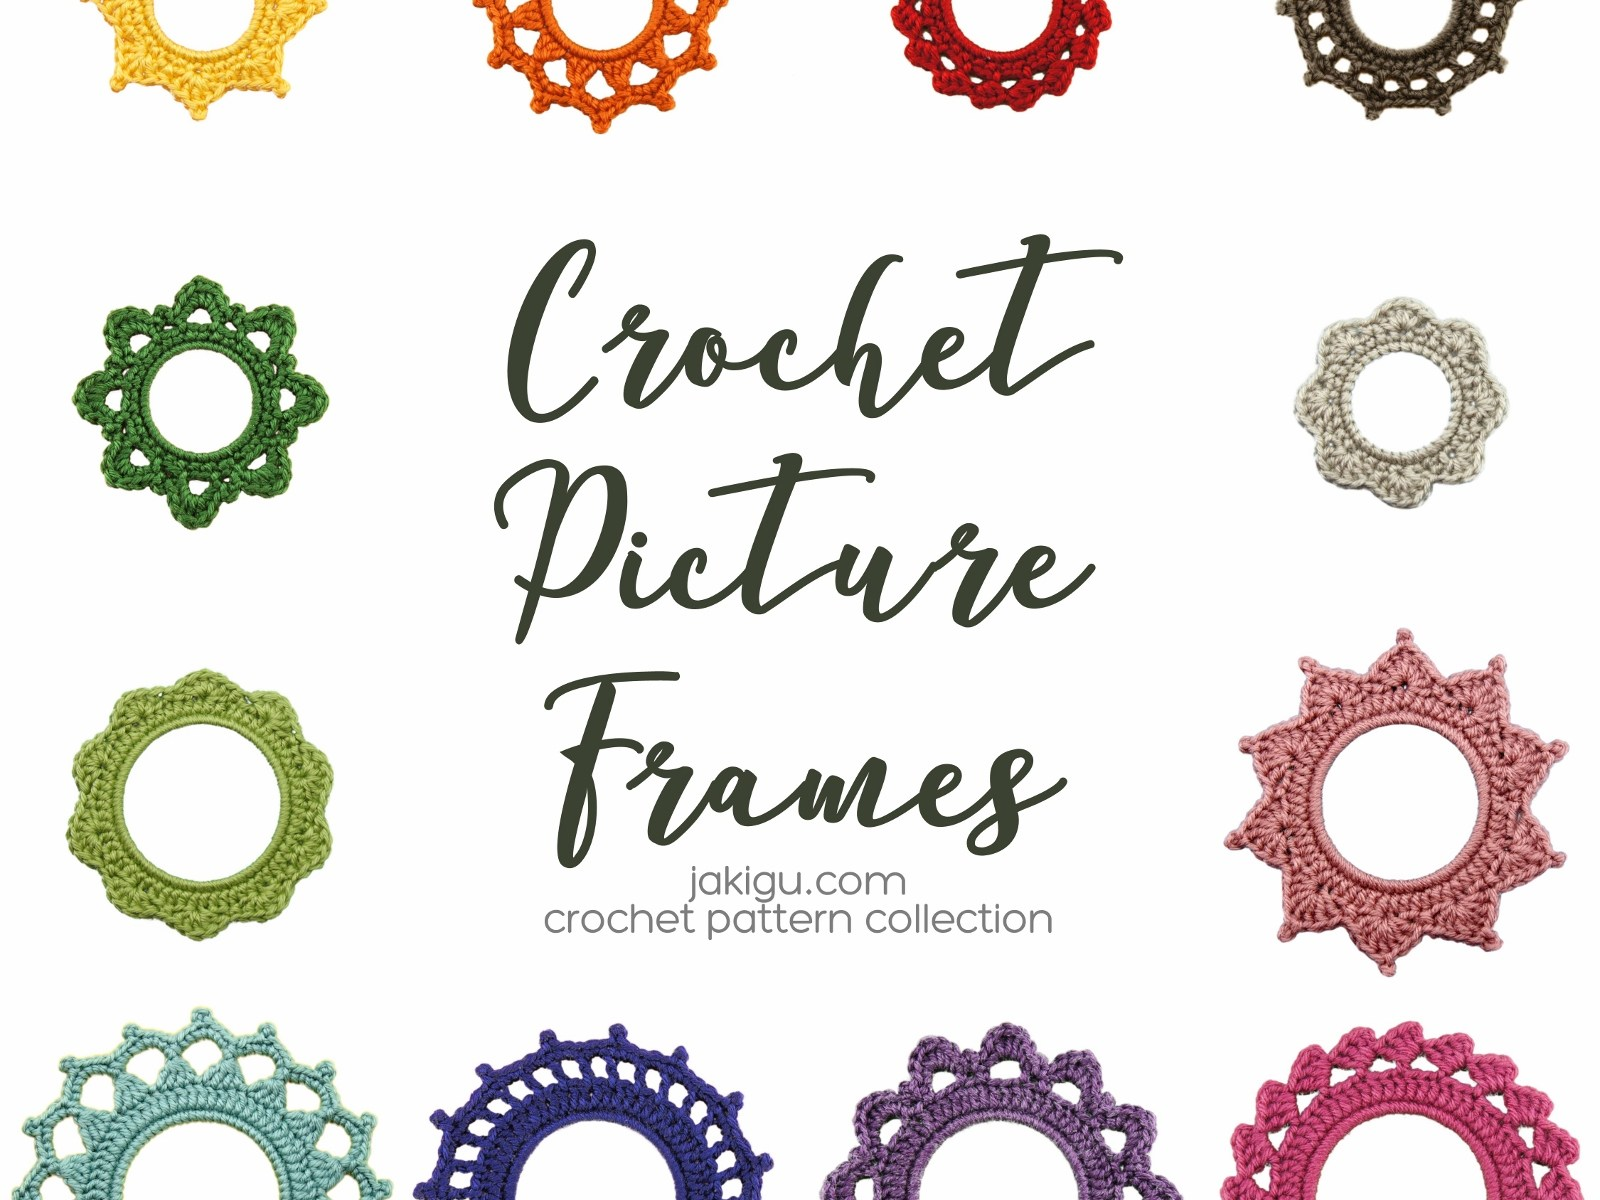 Crochet Picture Frame Pattern Collection by jakigu.com